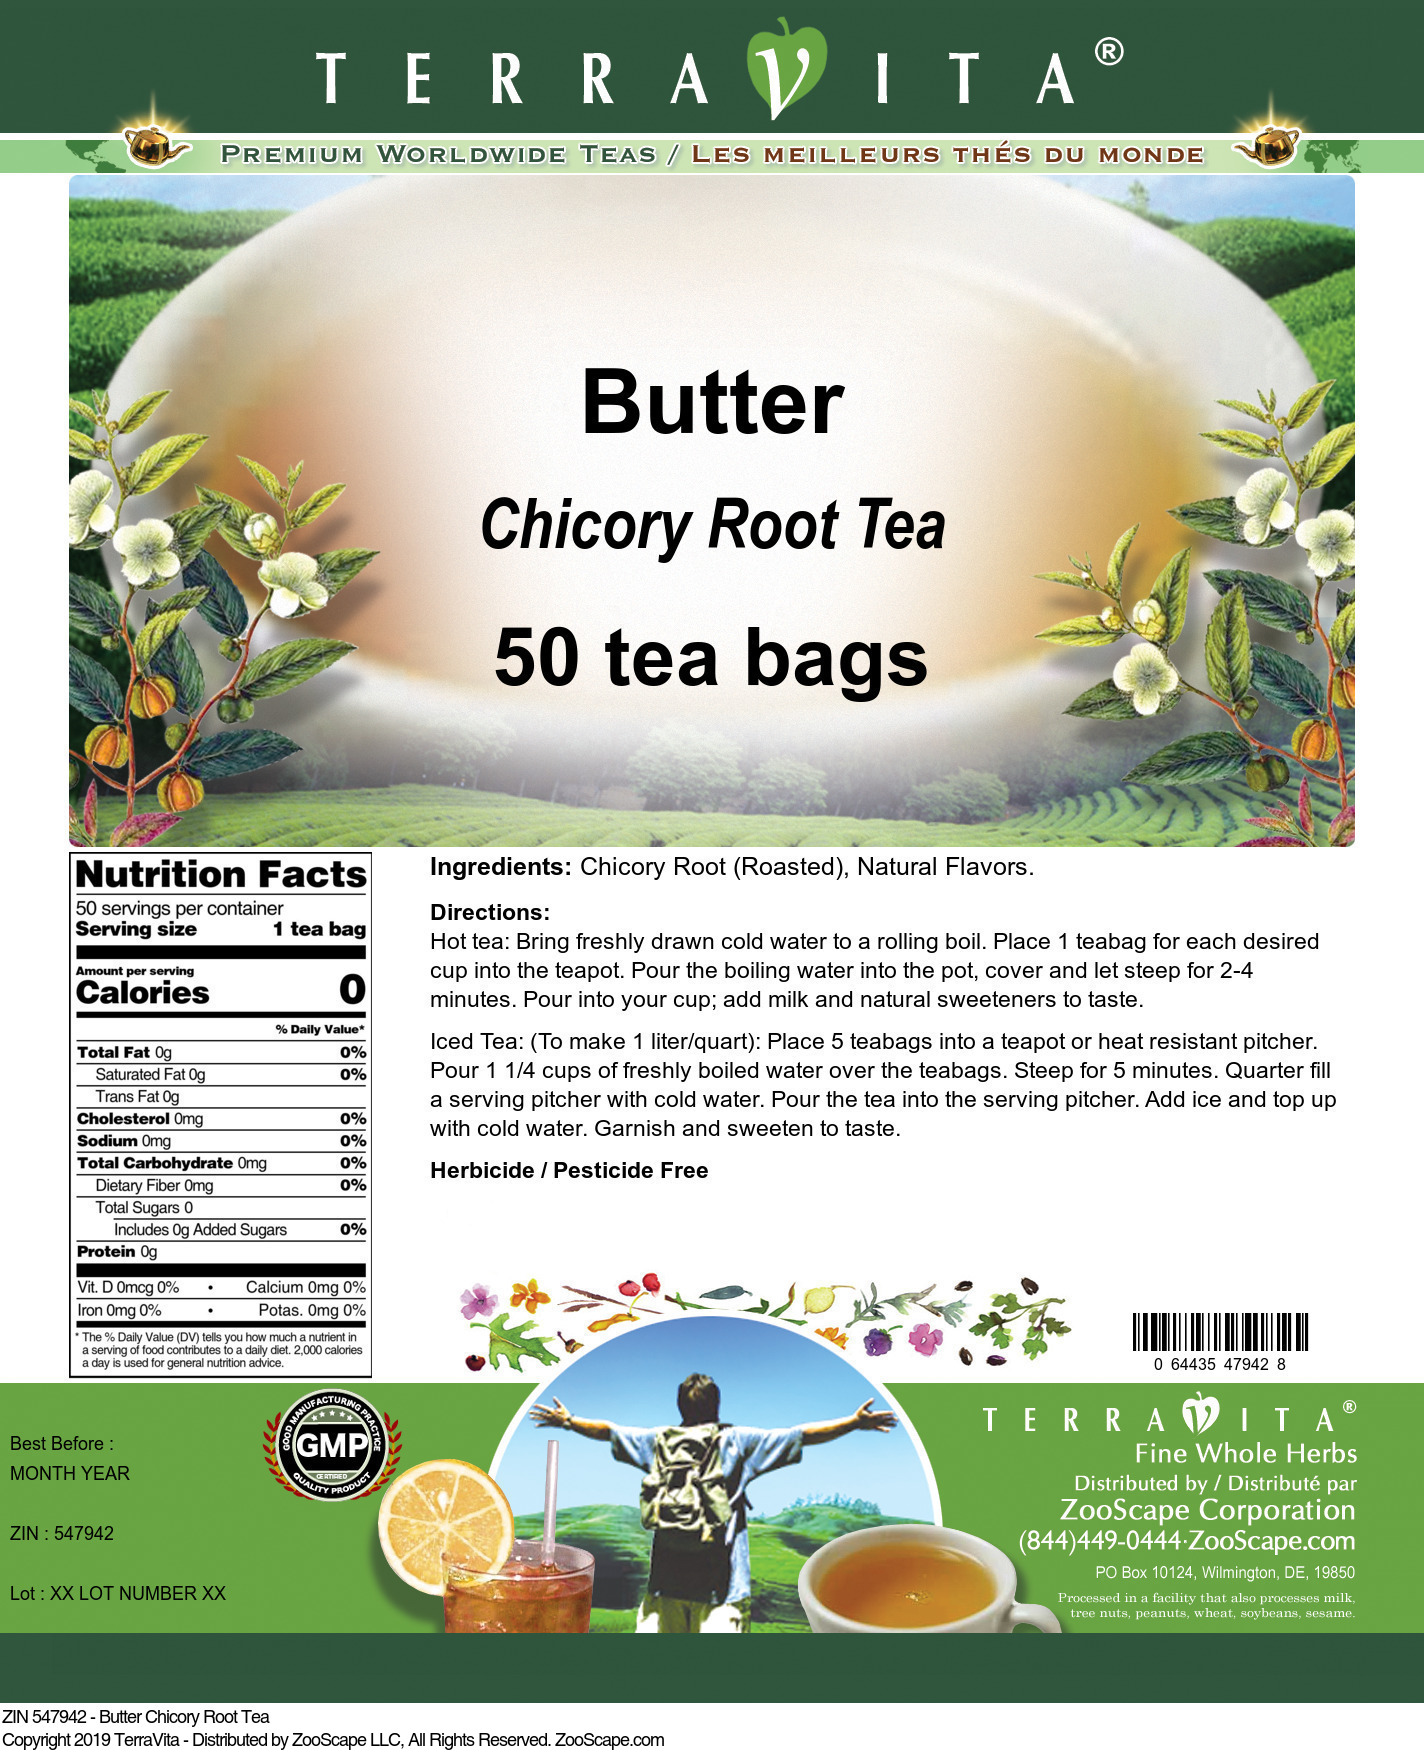 Butter Chicory Root